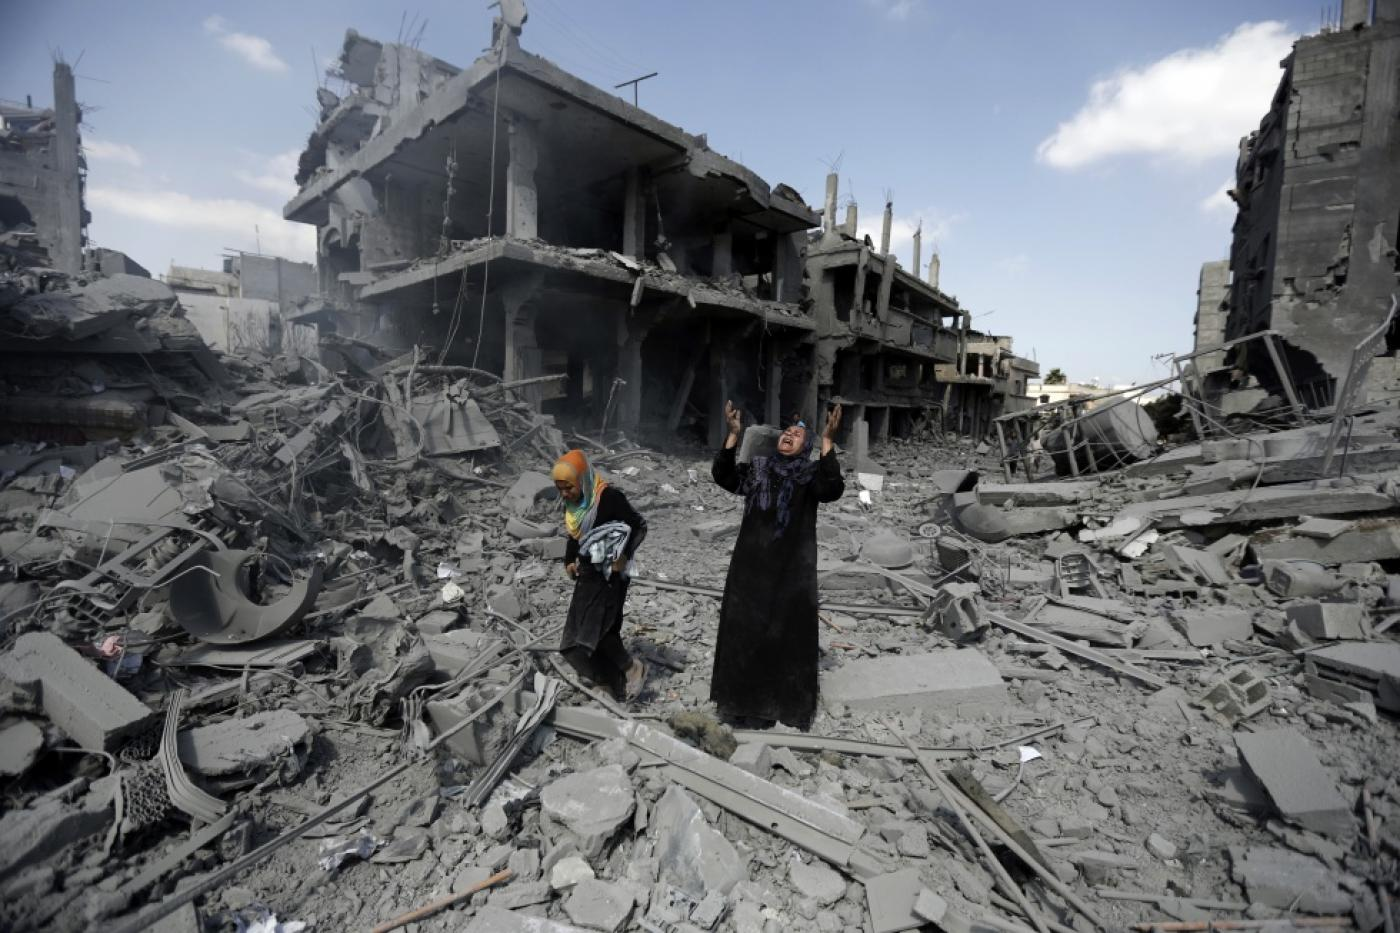 Gaza%20destruction%20topshot%20%28AFP%29.jpg